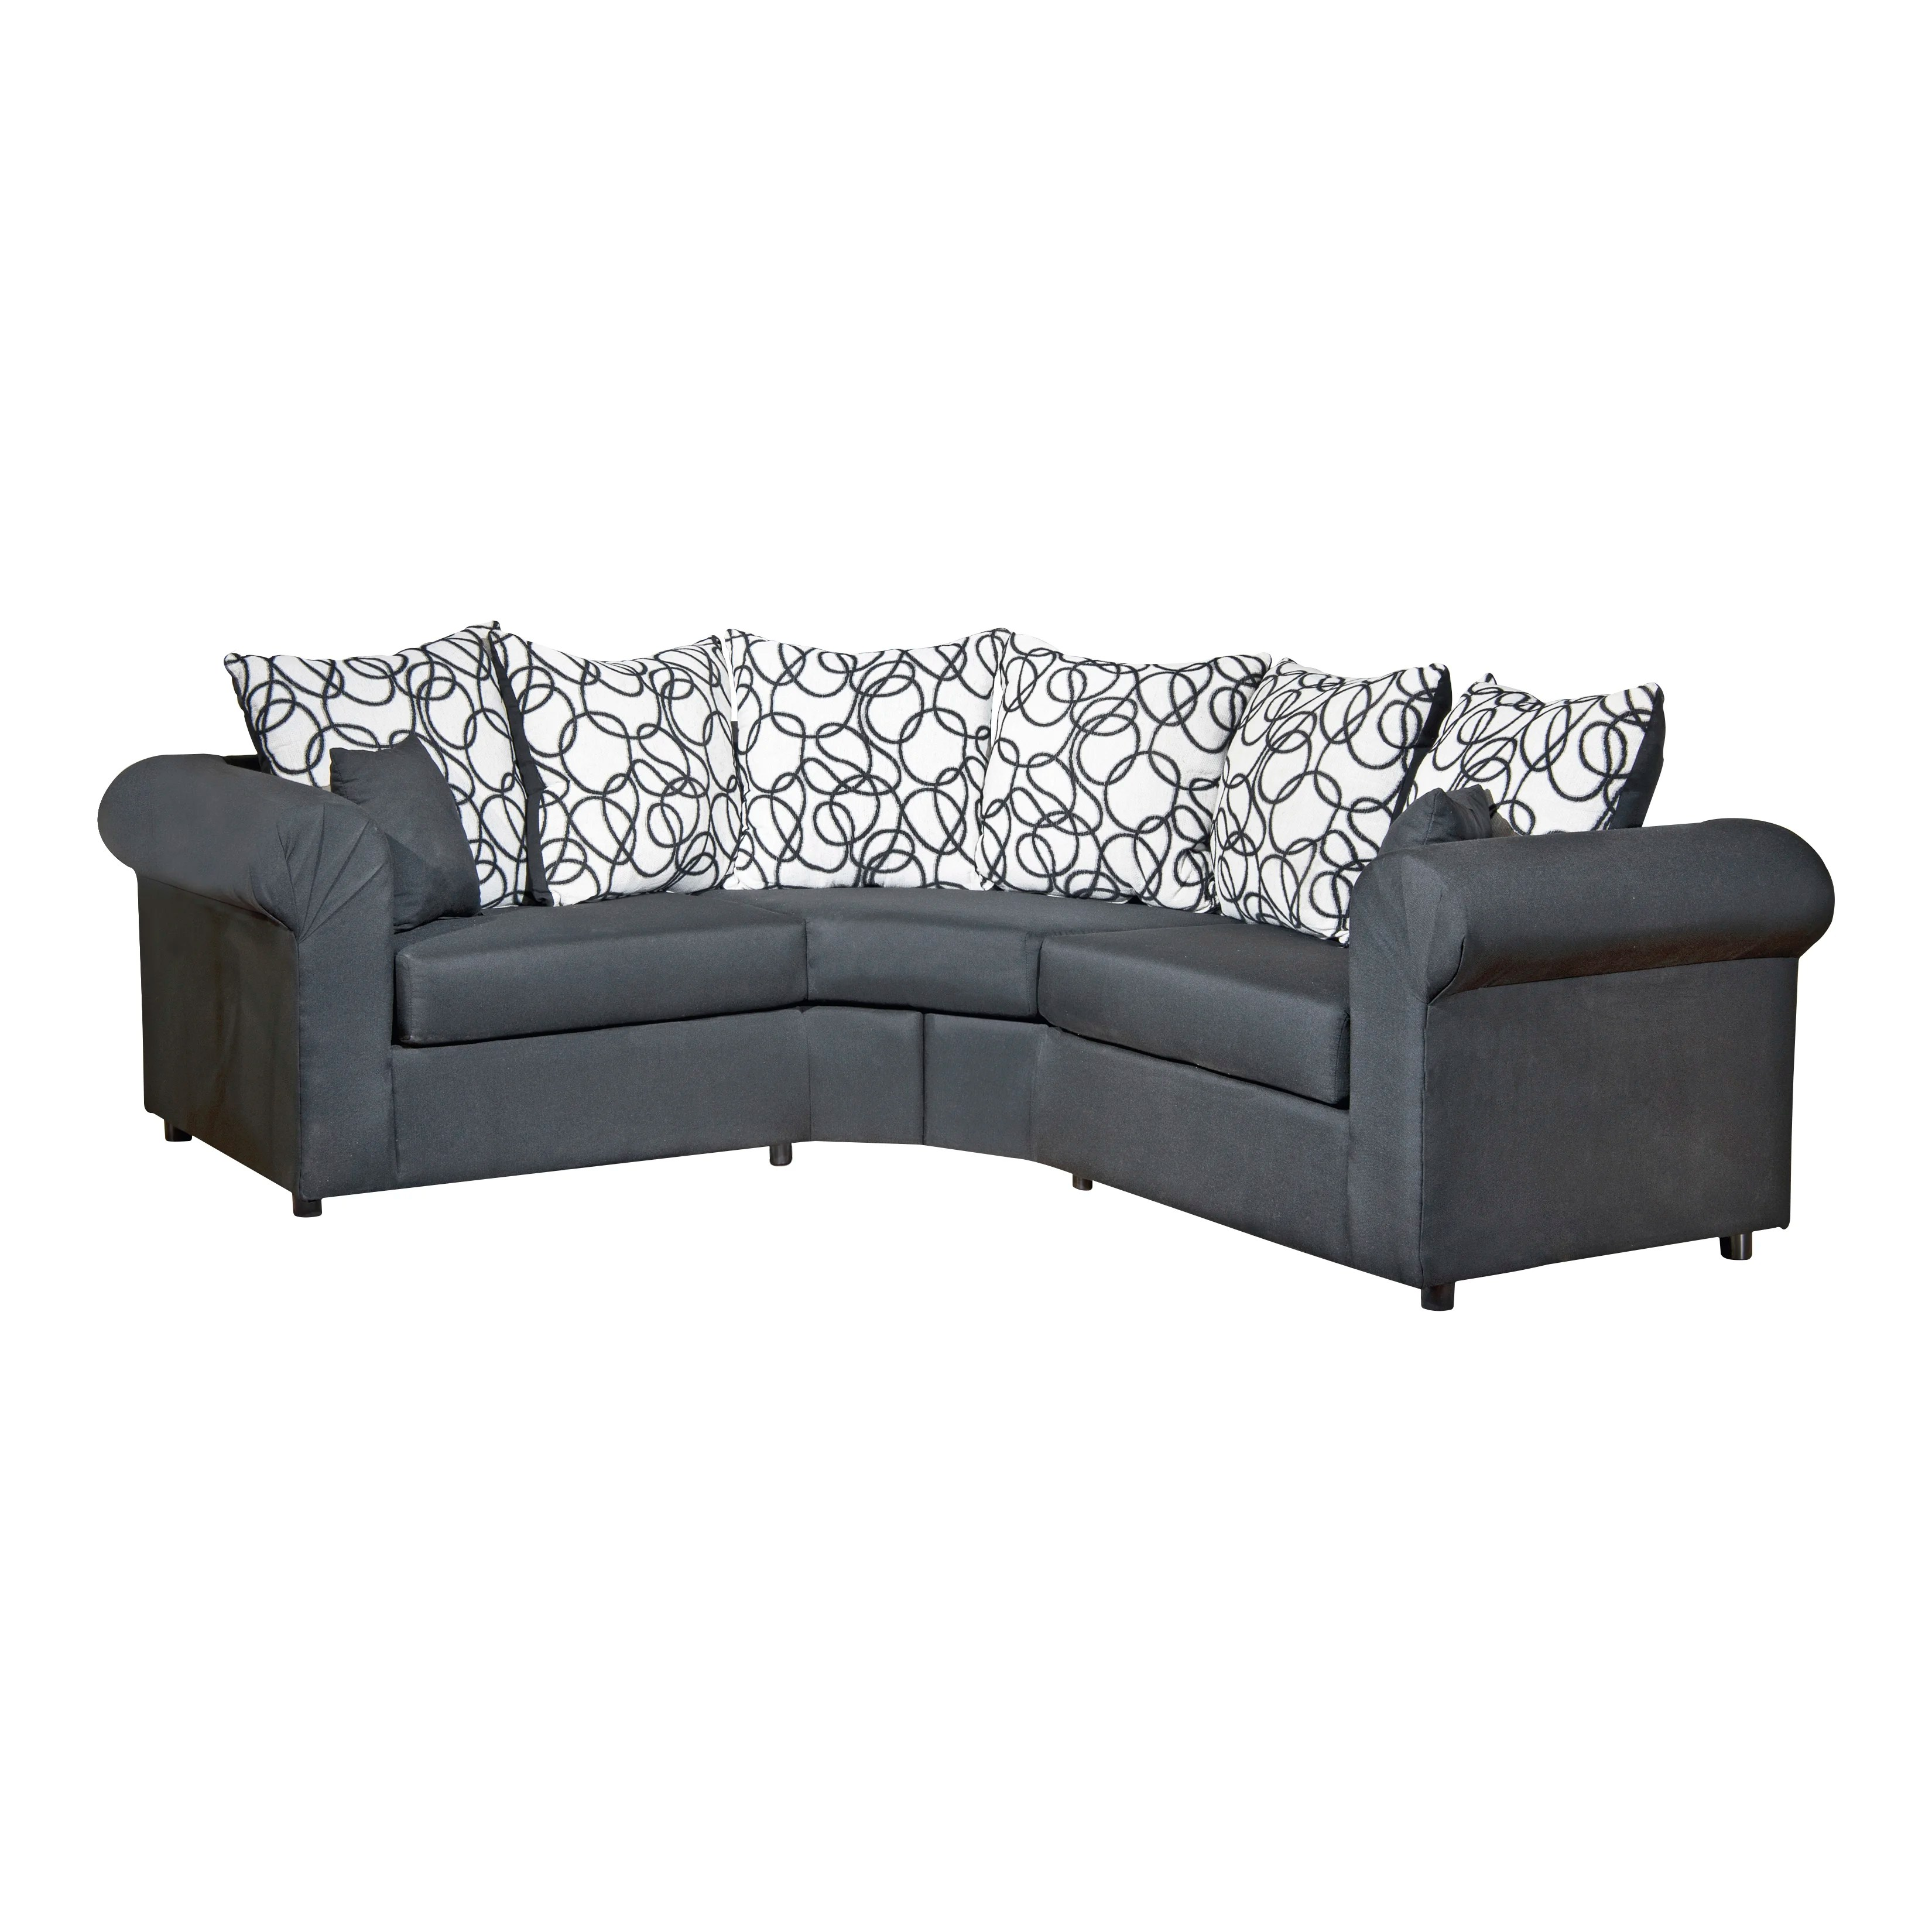 Curved Sectional Sofas You Ll Love Wayfair